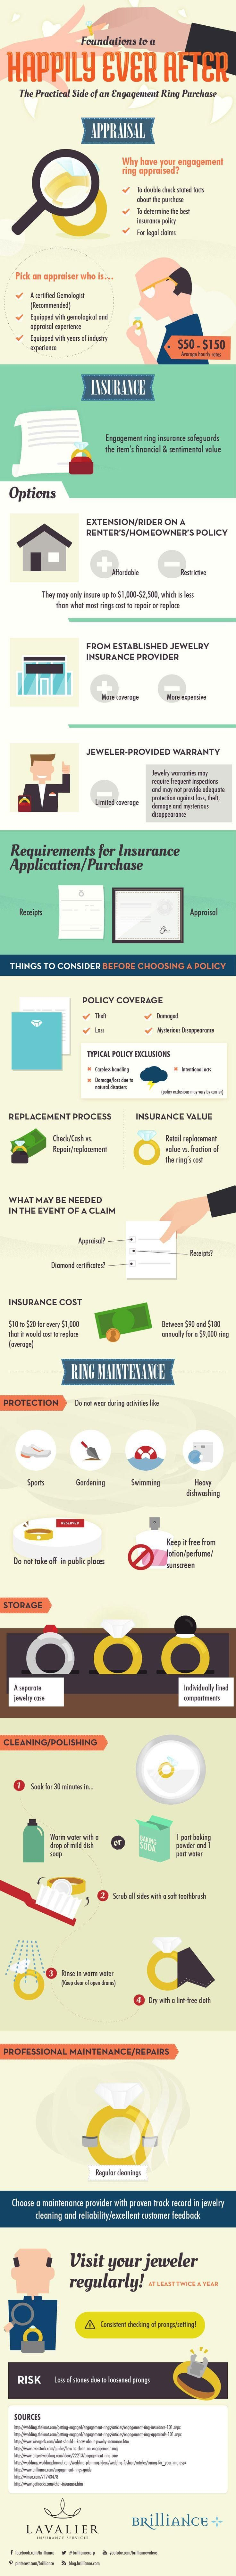 What Practical Information Do I Need to Know? First, have your ring appraised and insured. This is a huge investment that you'll want to protect. Second, take protective cleaning measures to preserve your ring and keep it brilliant and shining. Check out the information below from Brilliance.